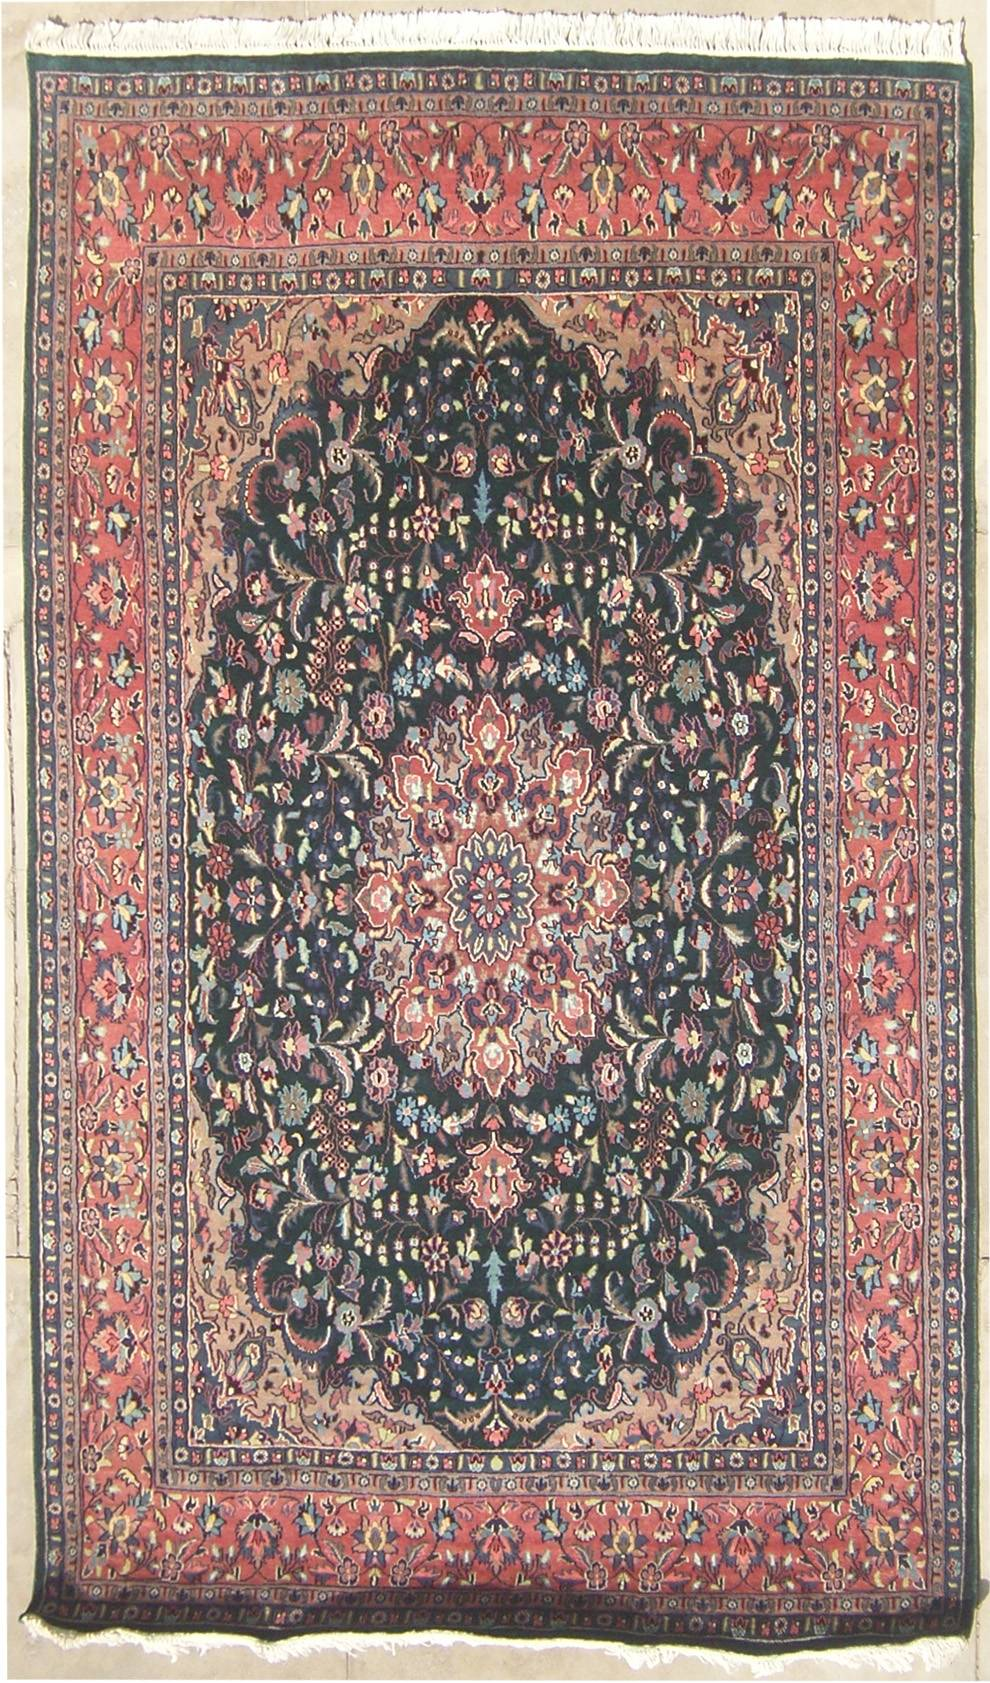 RugsTC 6'0 x 8'11 Double Knot Pak Persian Kashan  Authentic Hand Knotted Area Rug with Silk & Wool Pile - 6x9 Large Rug at Sears.com